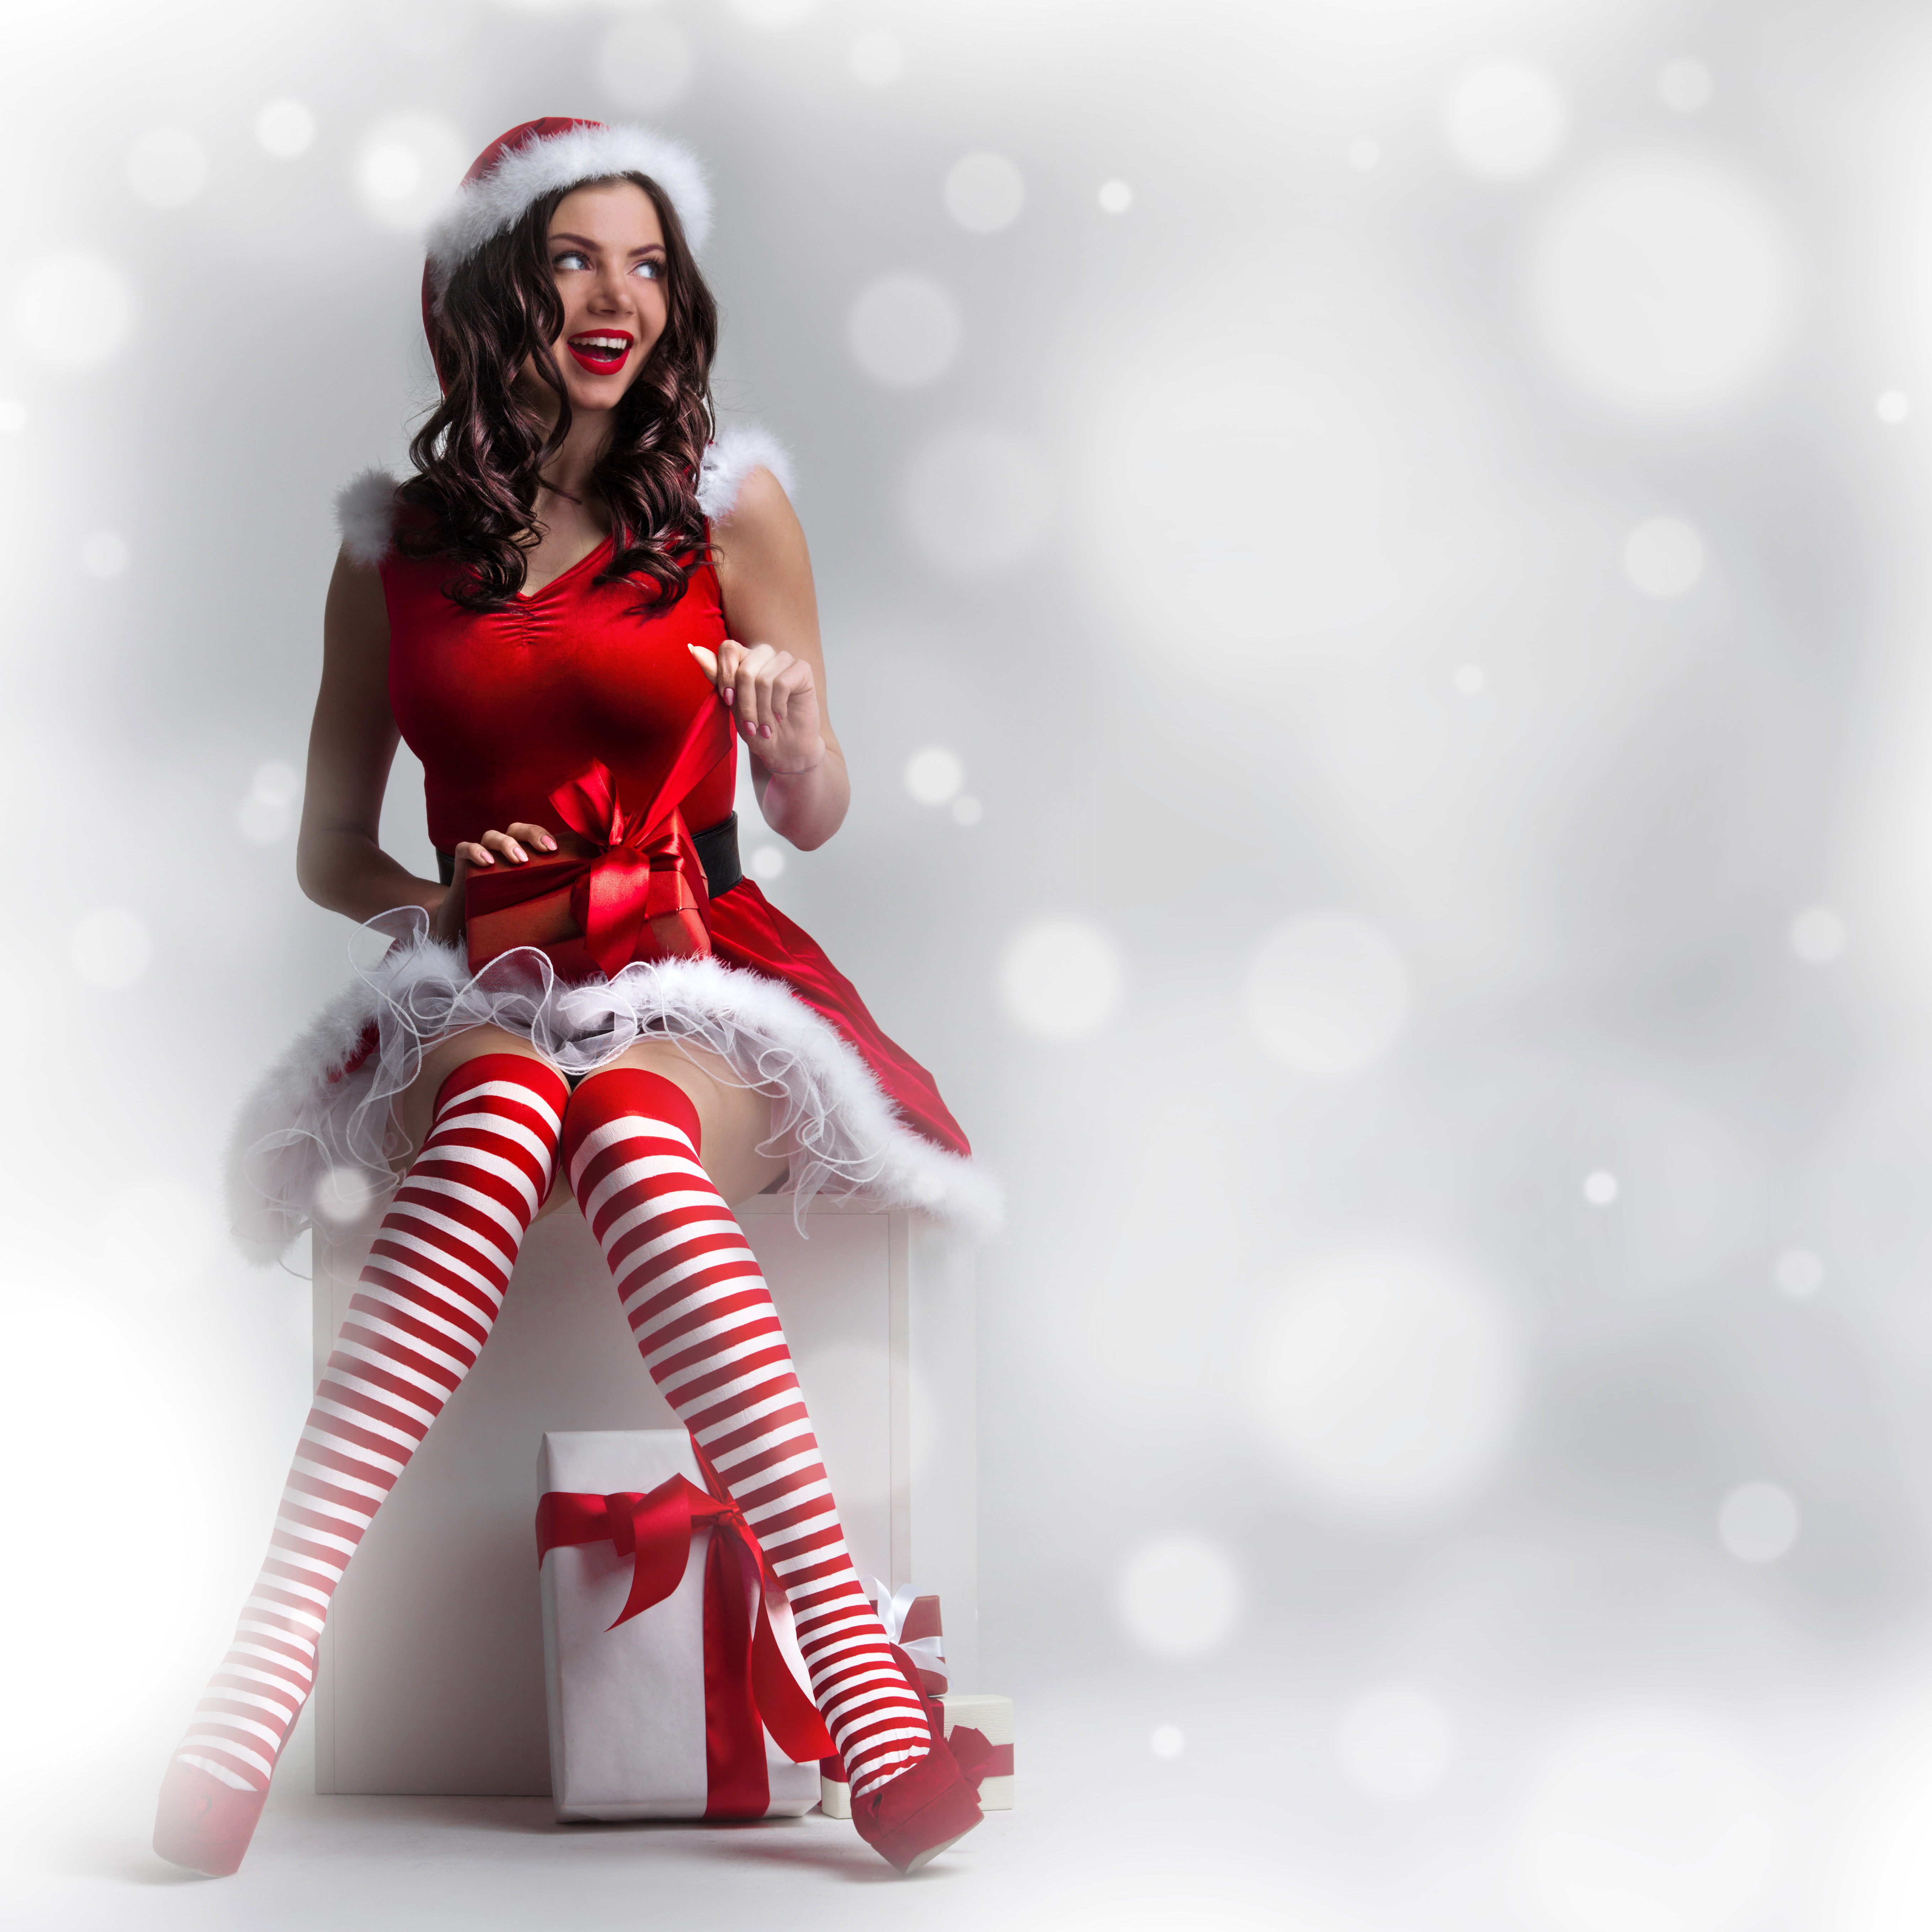 Images New year Knee highs Brown haired Smile Girls Legs present Uniform 5430x5430 Christmas female young woman Gifts